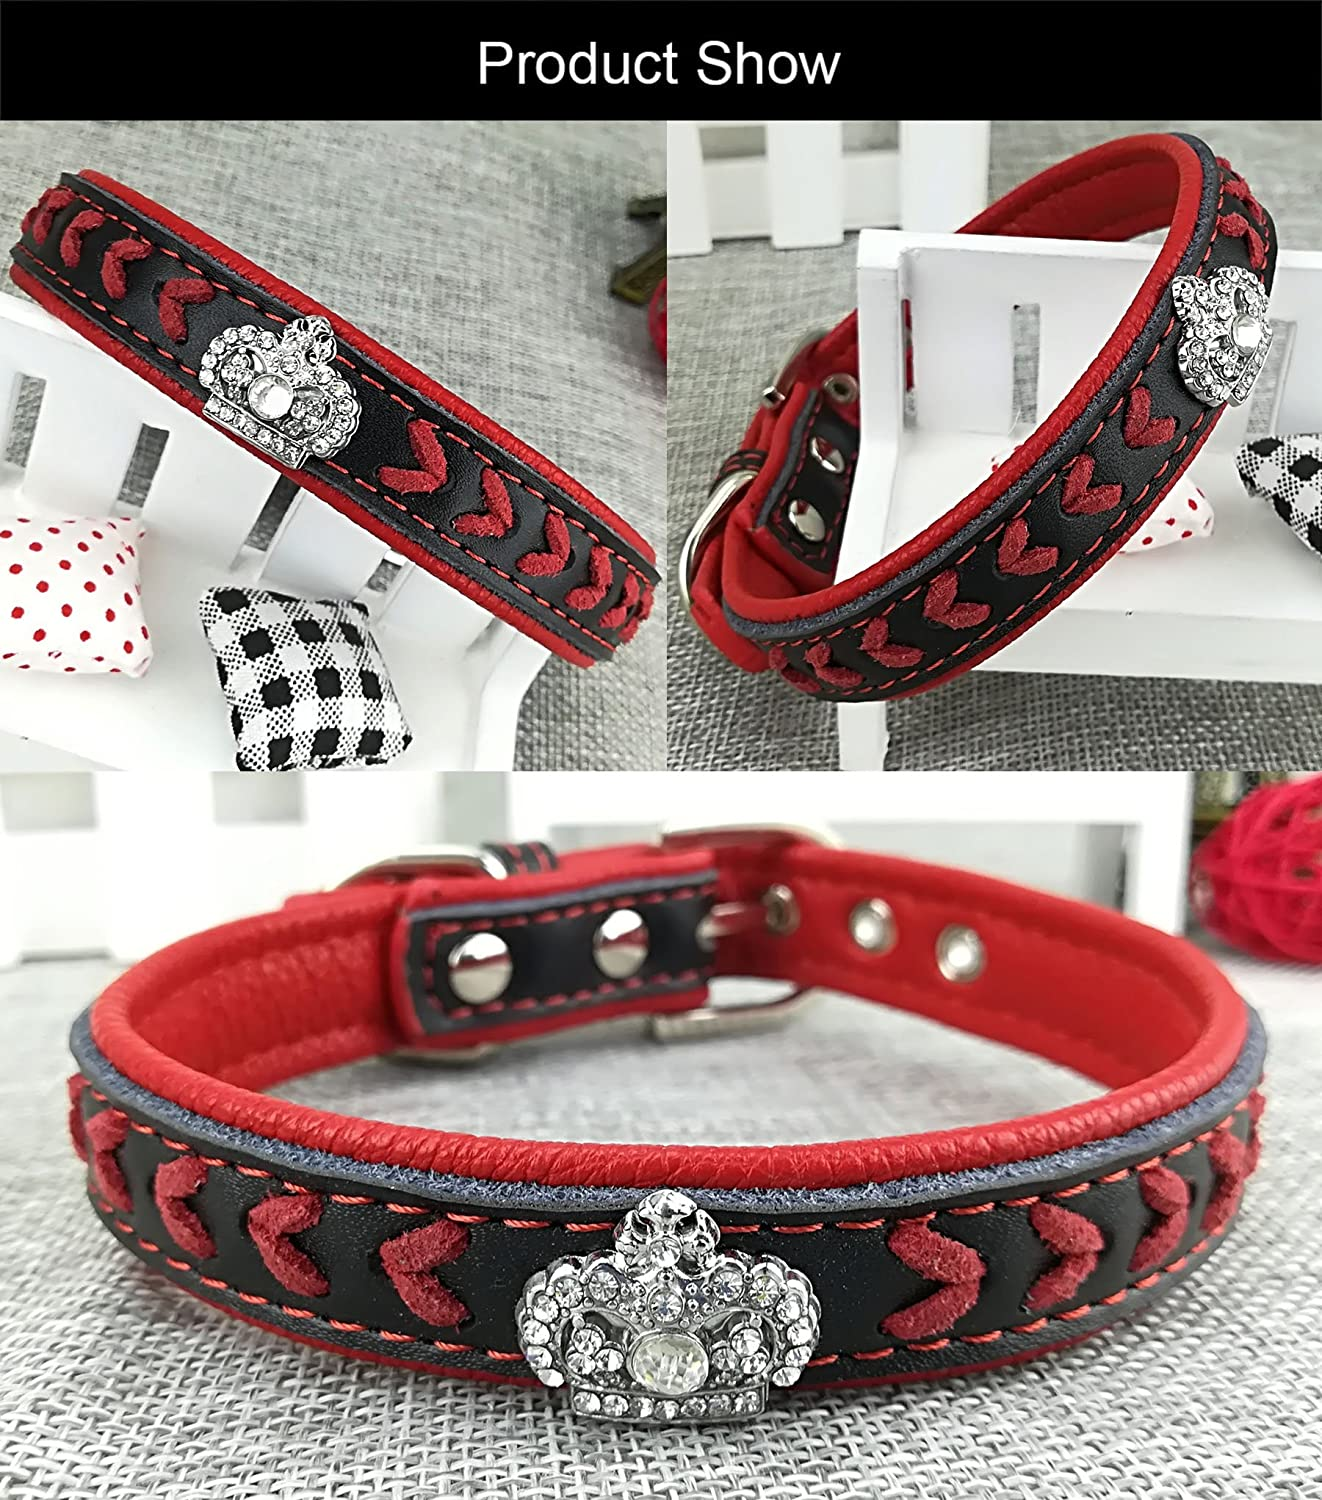 XL Newtensina Dog Collar and Lead Set Nylon Straps Woven Bling Collar Leather Diamante Puppy Collar with Leash for Dogs Red